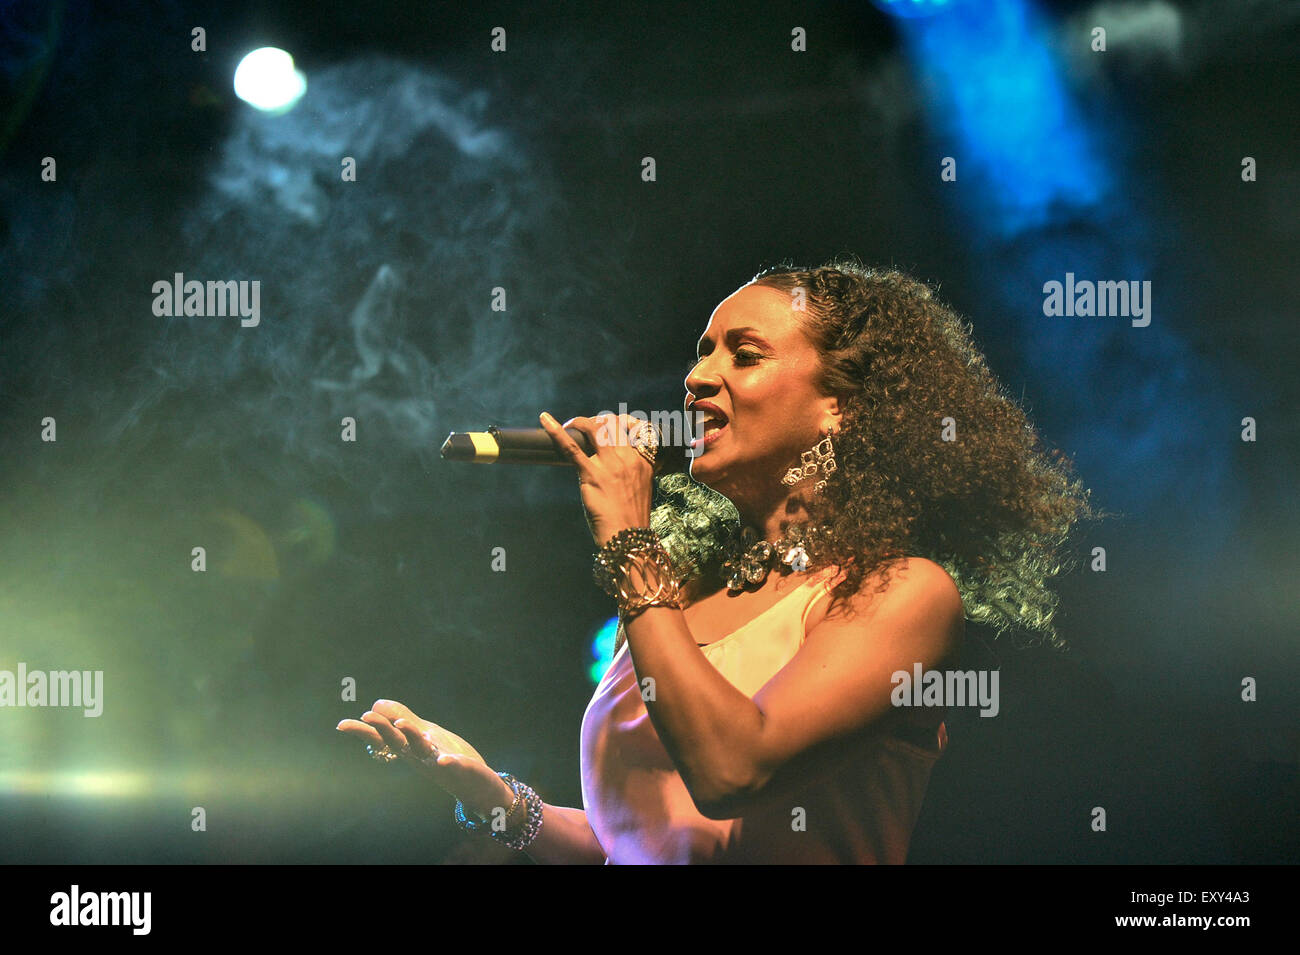 Brentwood, Essex.  17th July, 2015.  The glamorous and iconic Sister Sledge headlining at the Brentwood Festival. - Stock Image